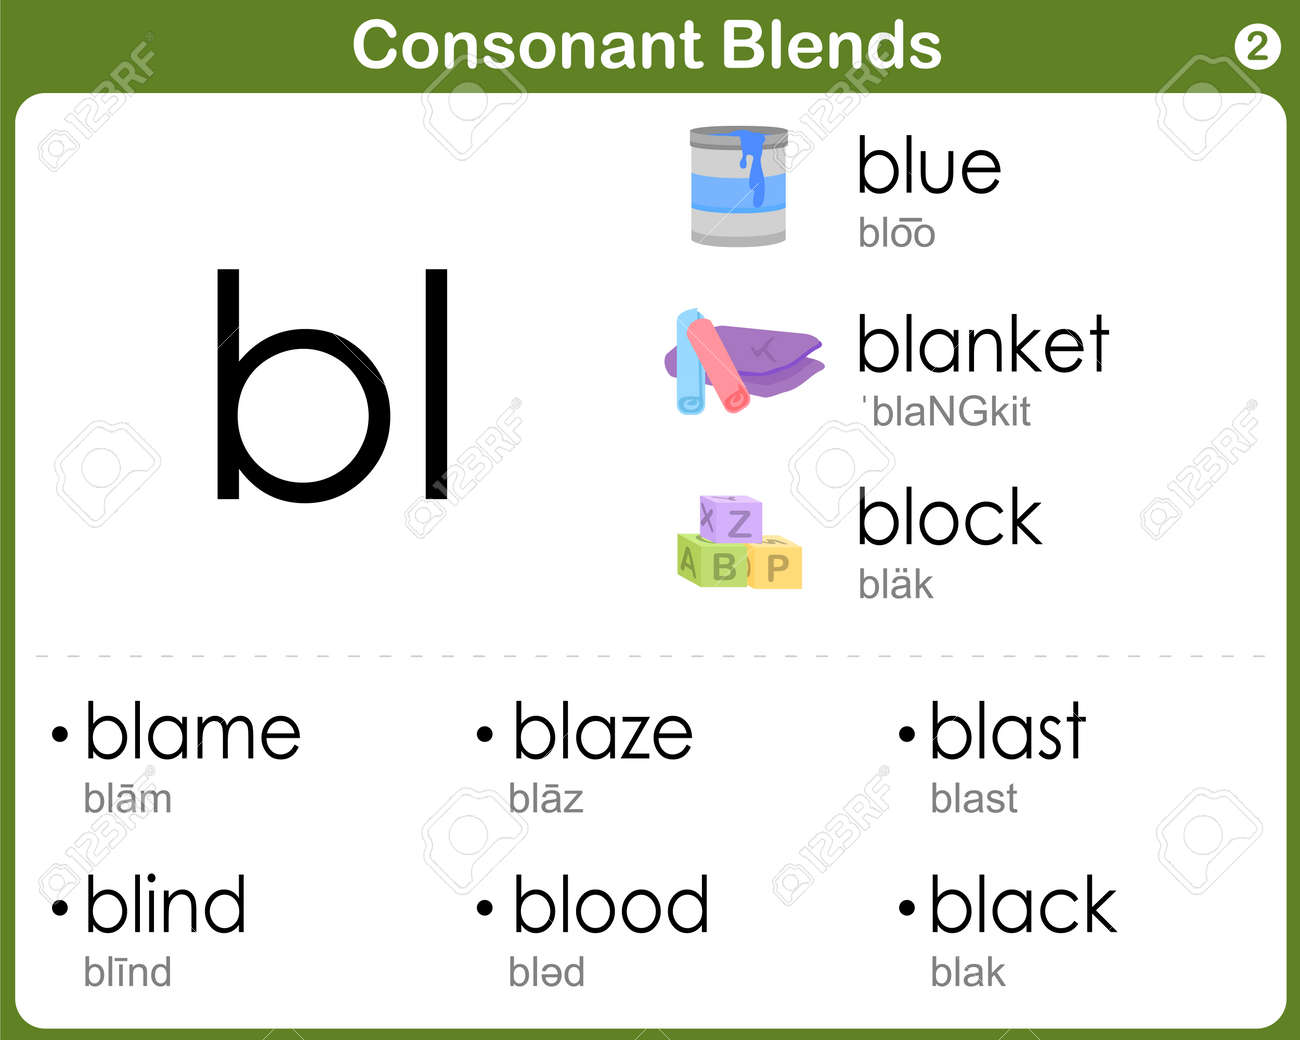 Worksheets Consonant Blends Worksheets consonant blends worksheet for kids royalty free cliparts vectors stock vector 36646107